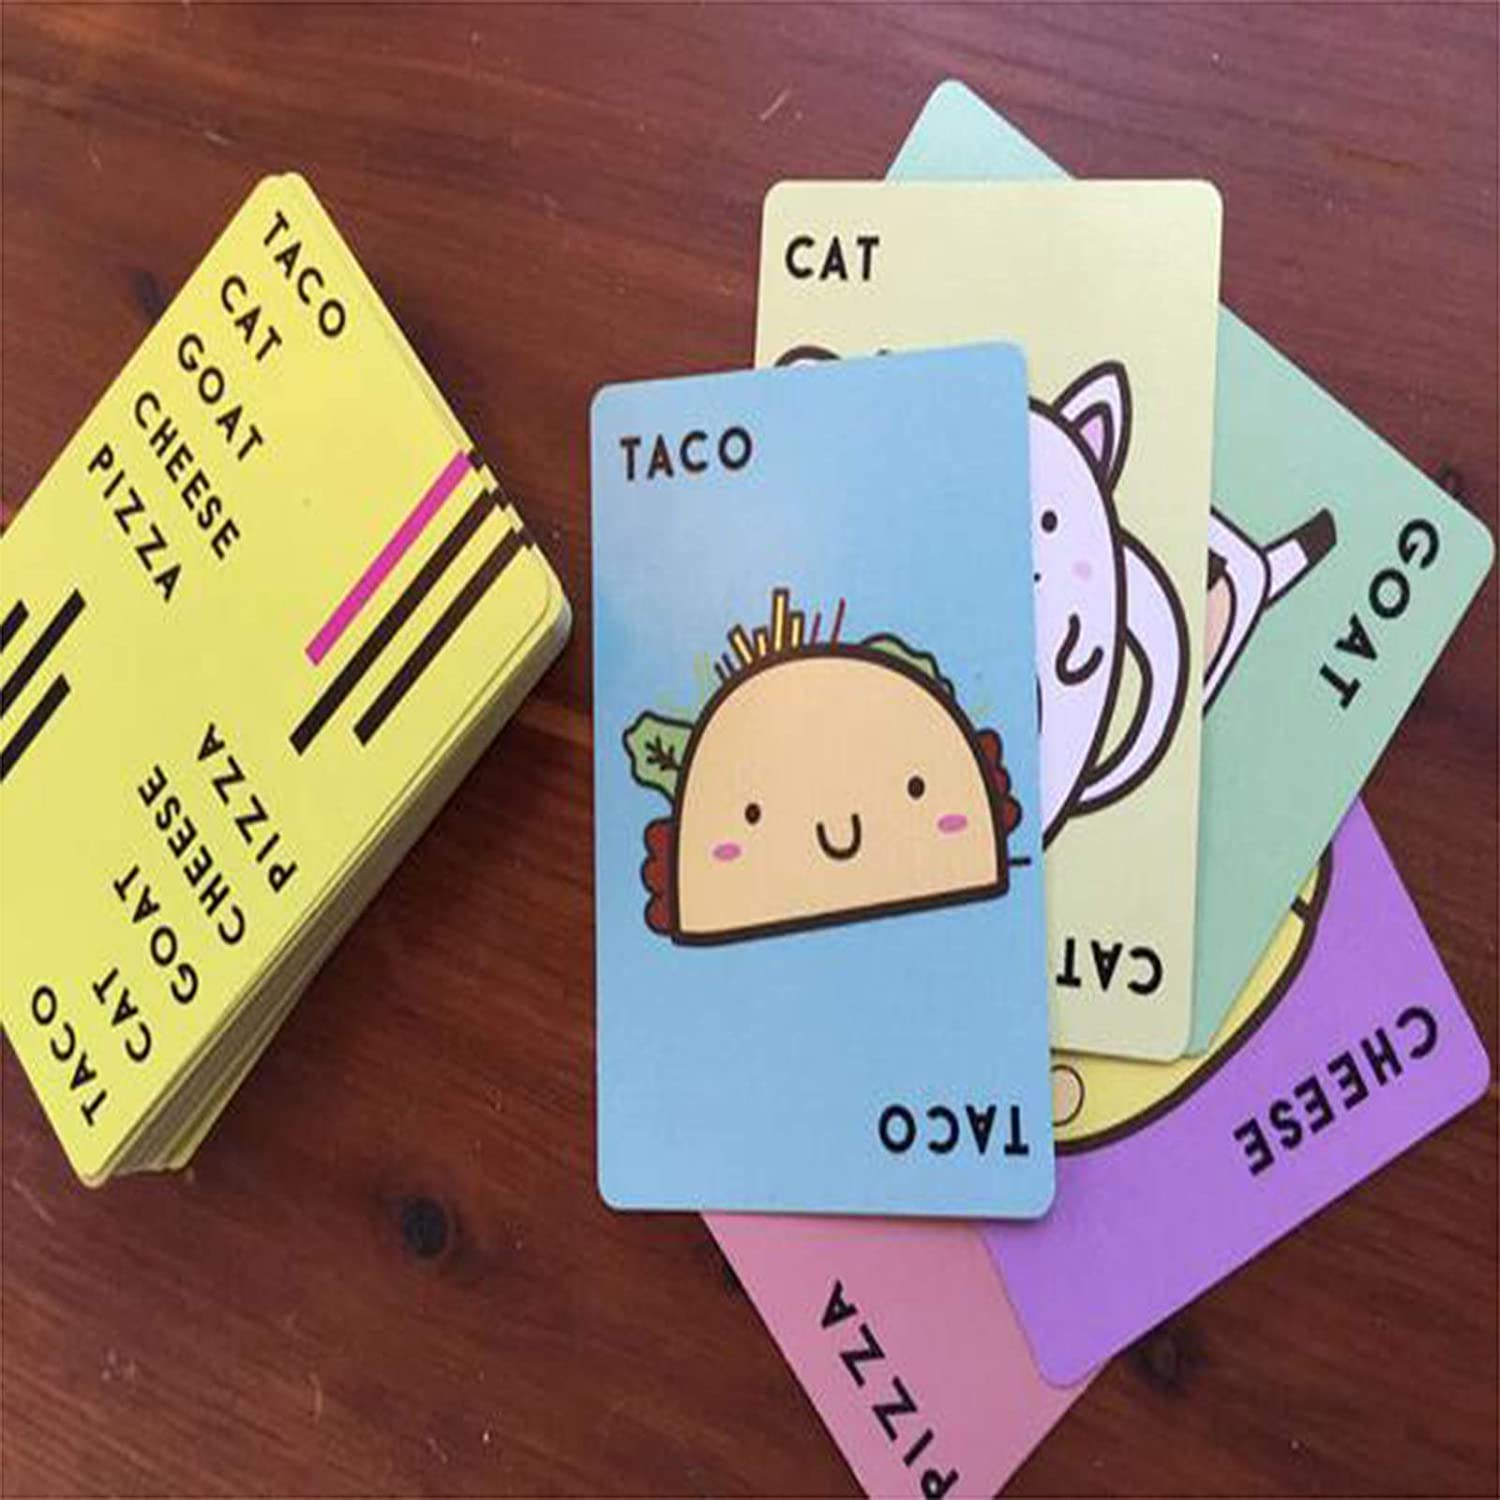 Family Games-Friendly Party Games Teens /& Kids,and Competitive Fun for Game Nights! Taco Cat Goat Cheese Pizza Card Games for Adults